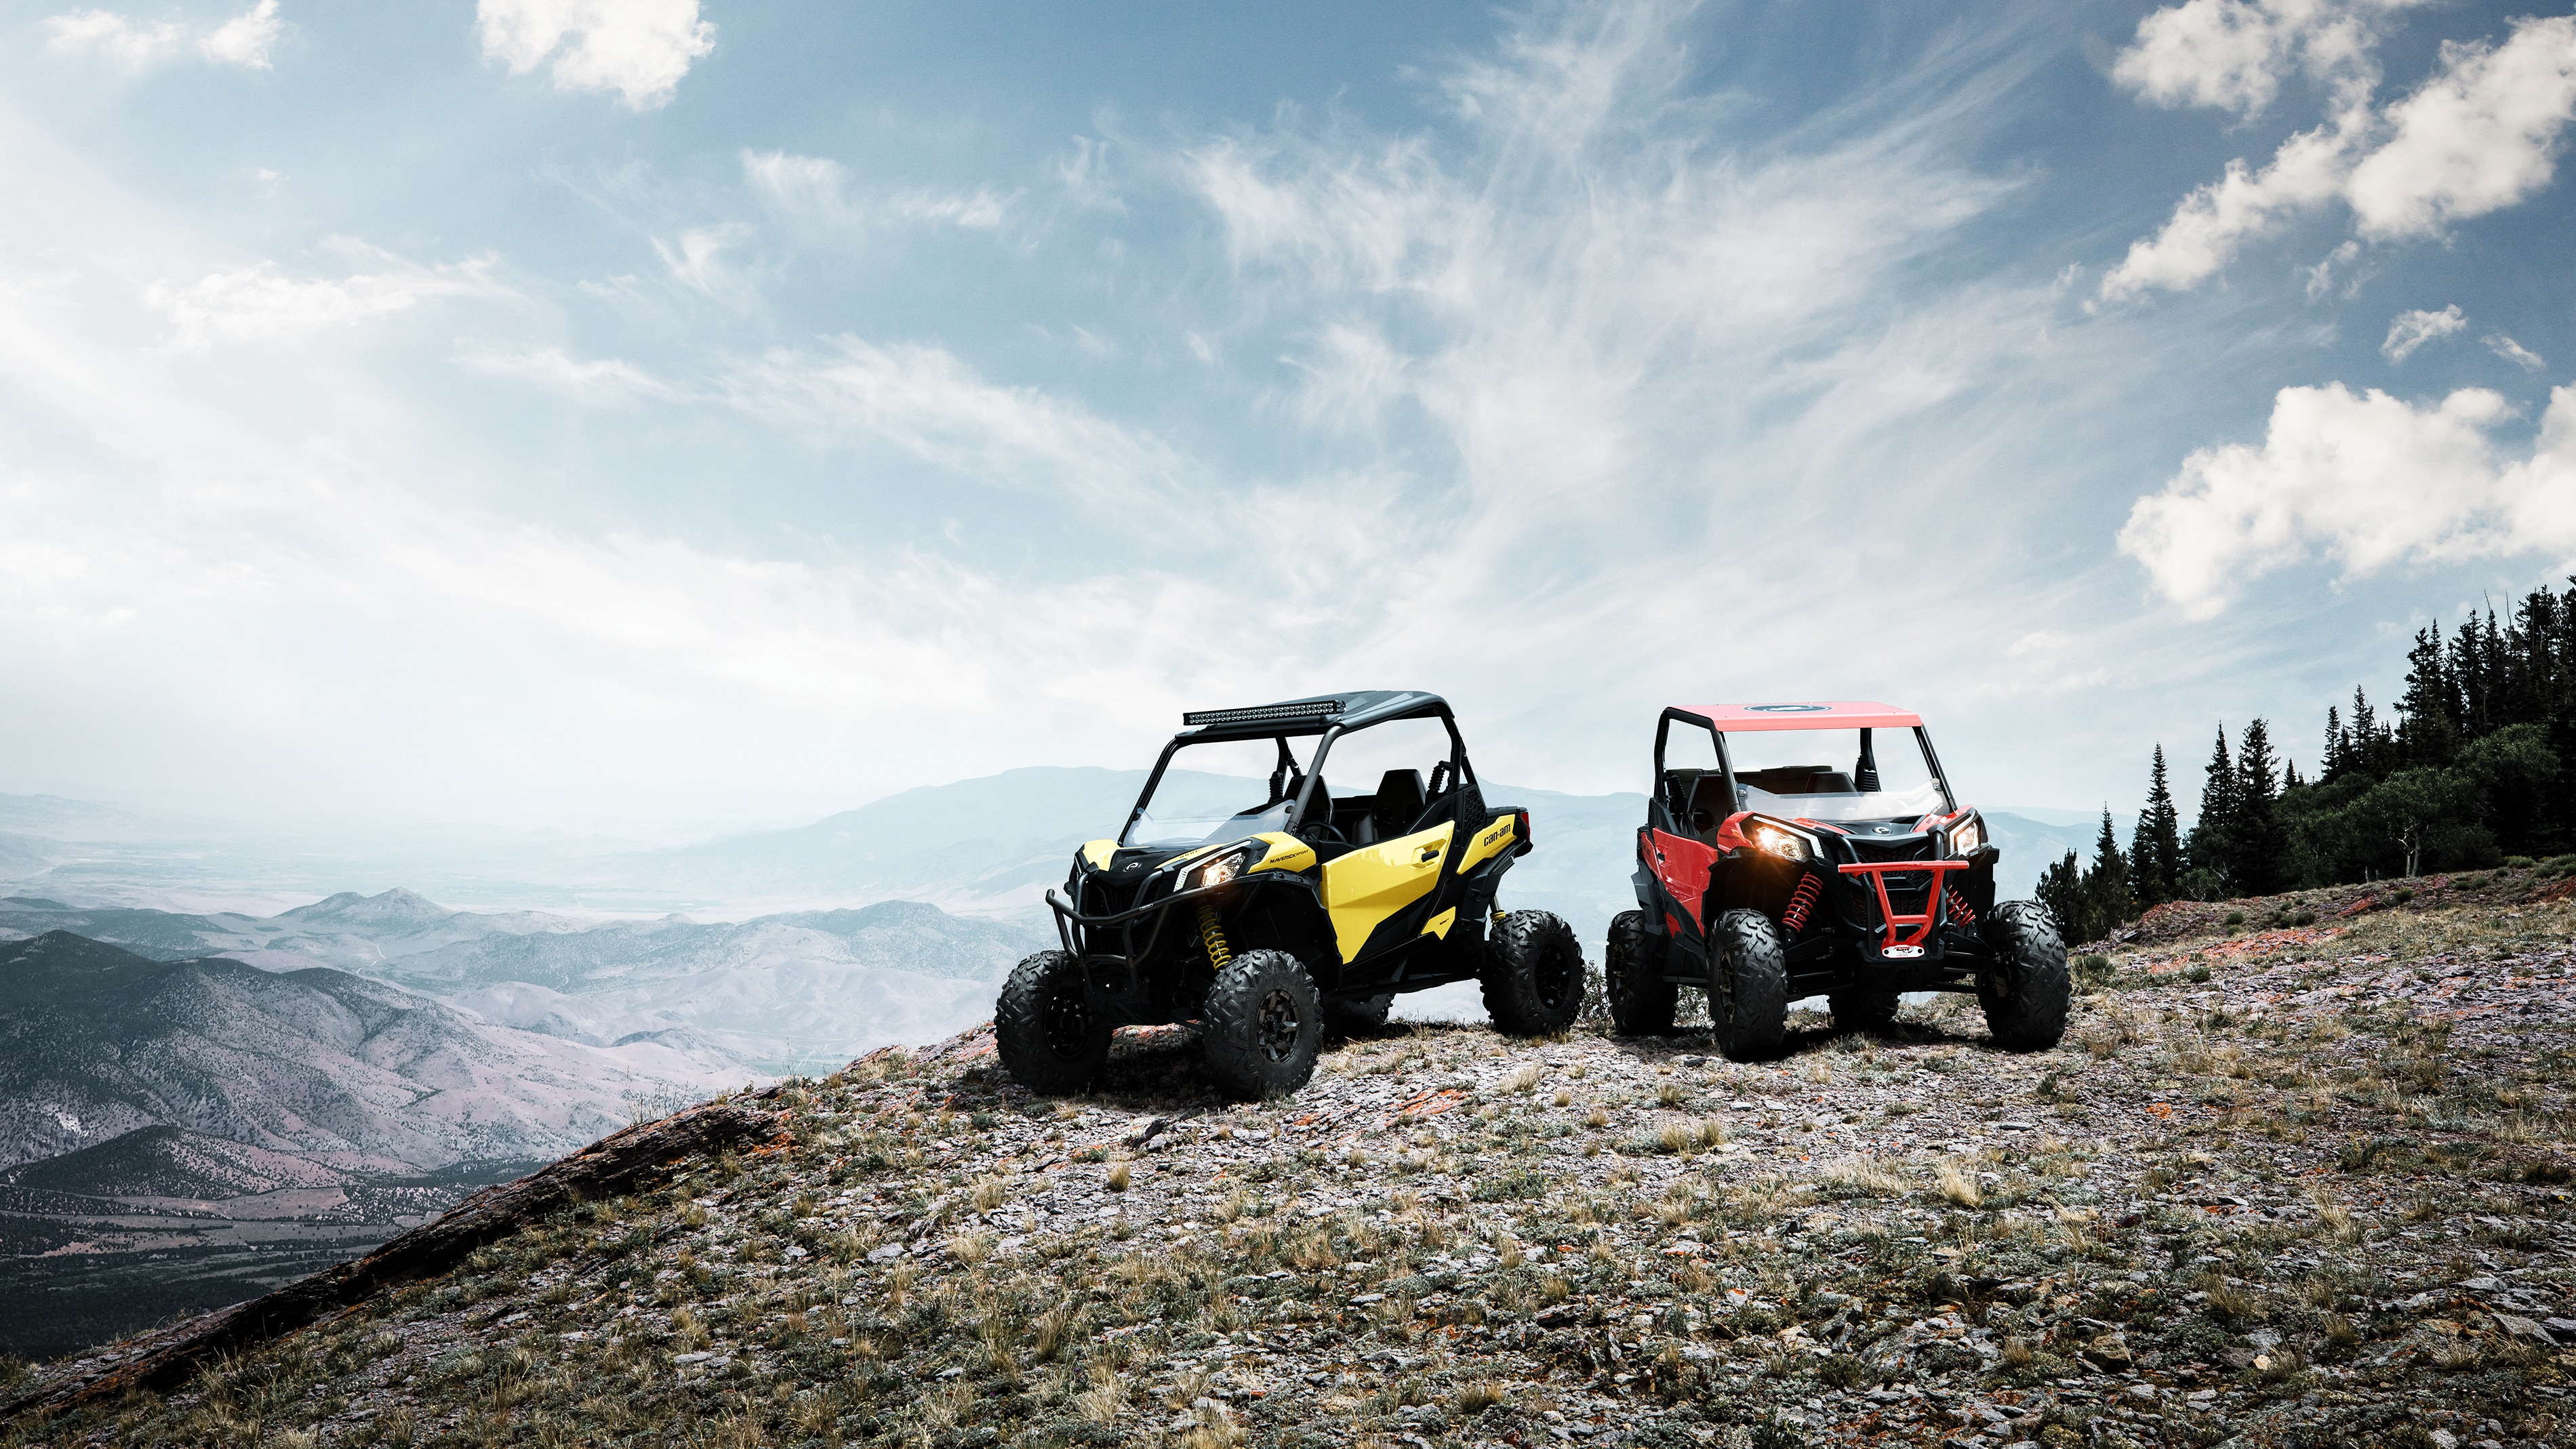 Pair of Can-Am Off-Road side-by-side vehicles on a mountain